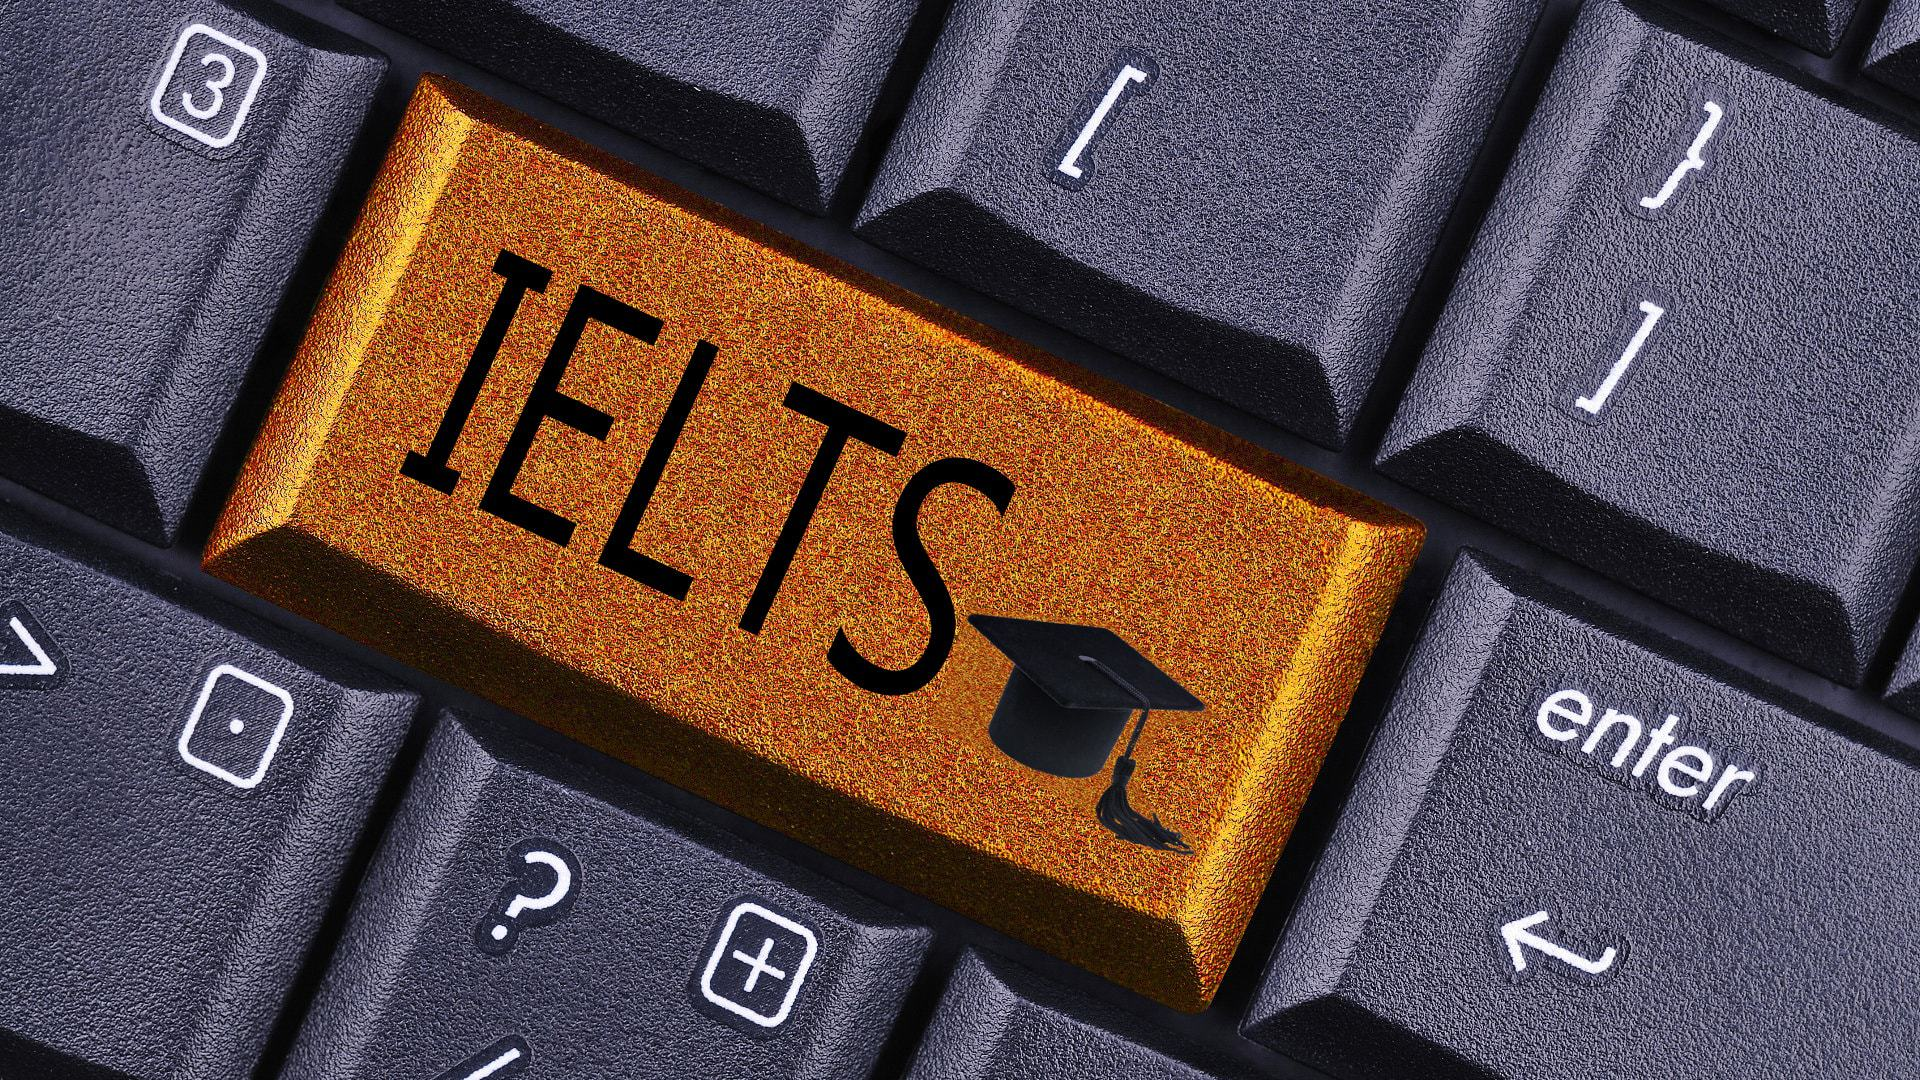 Get ielts certificate online 100% without exam